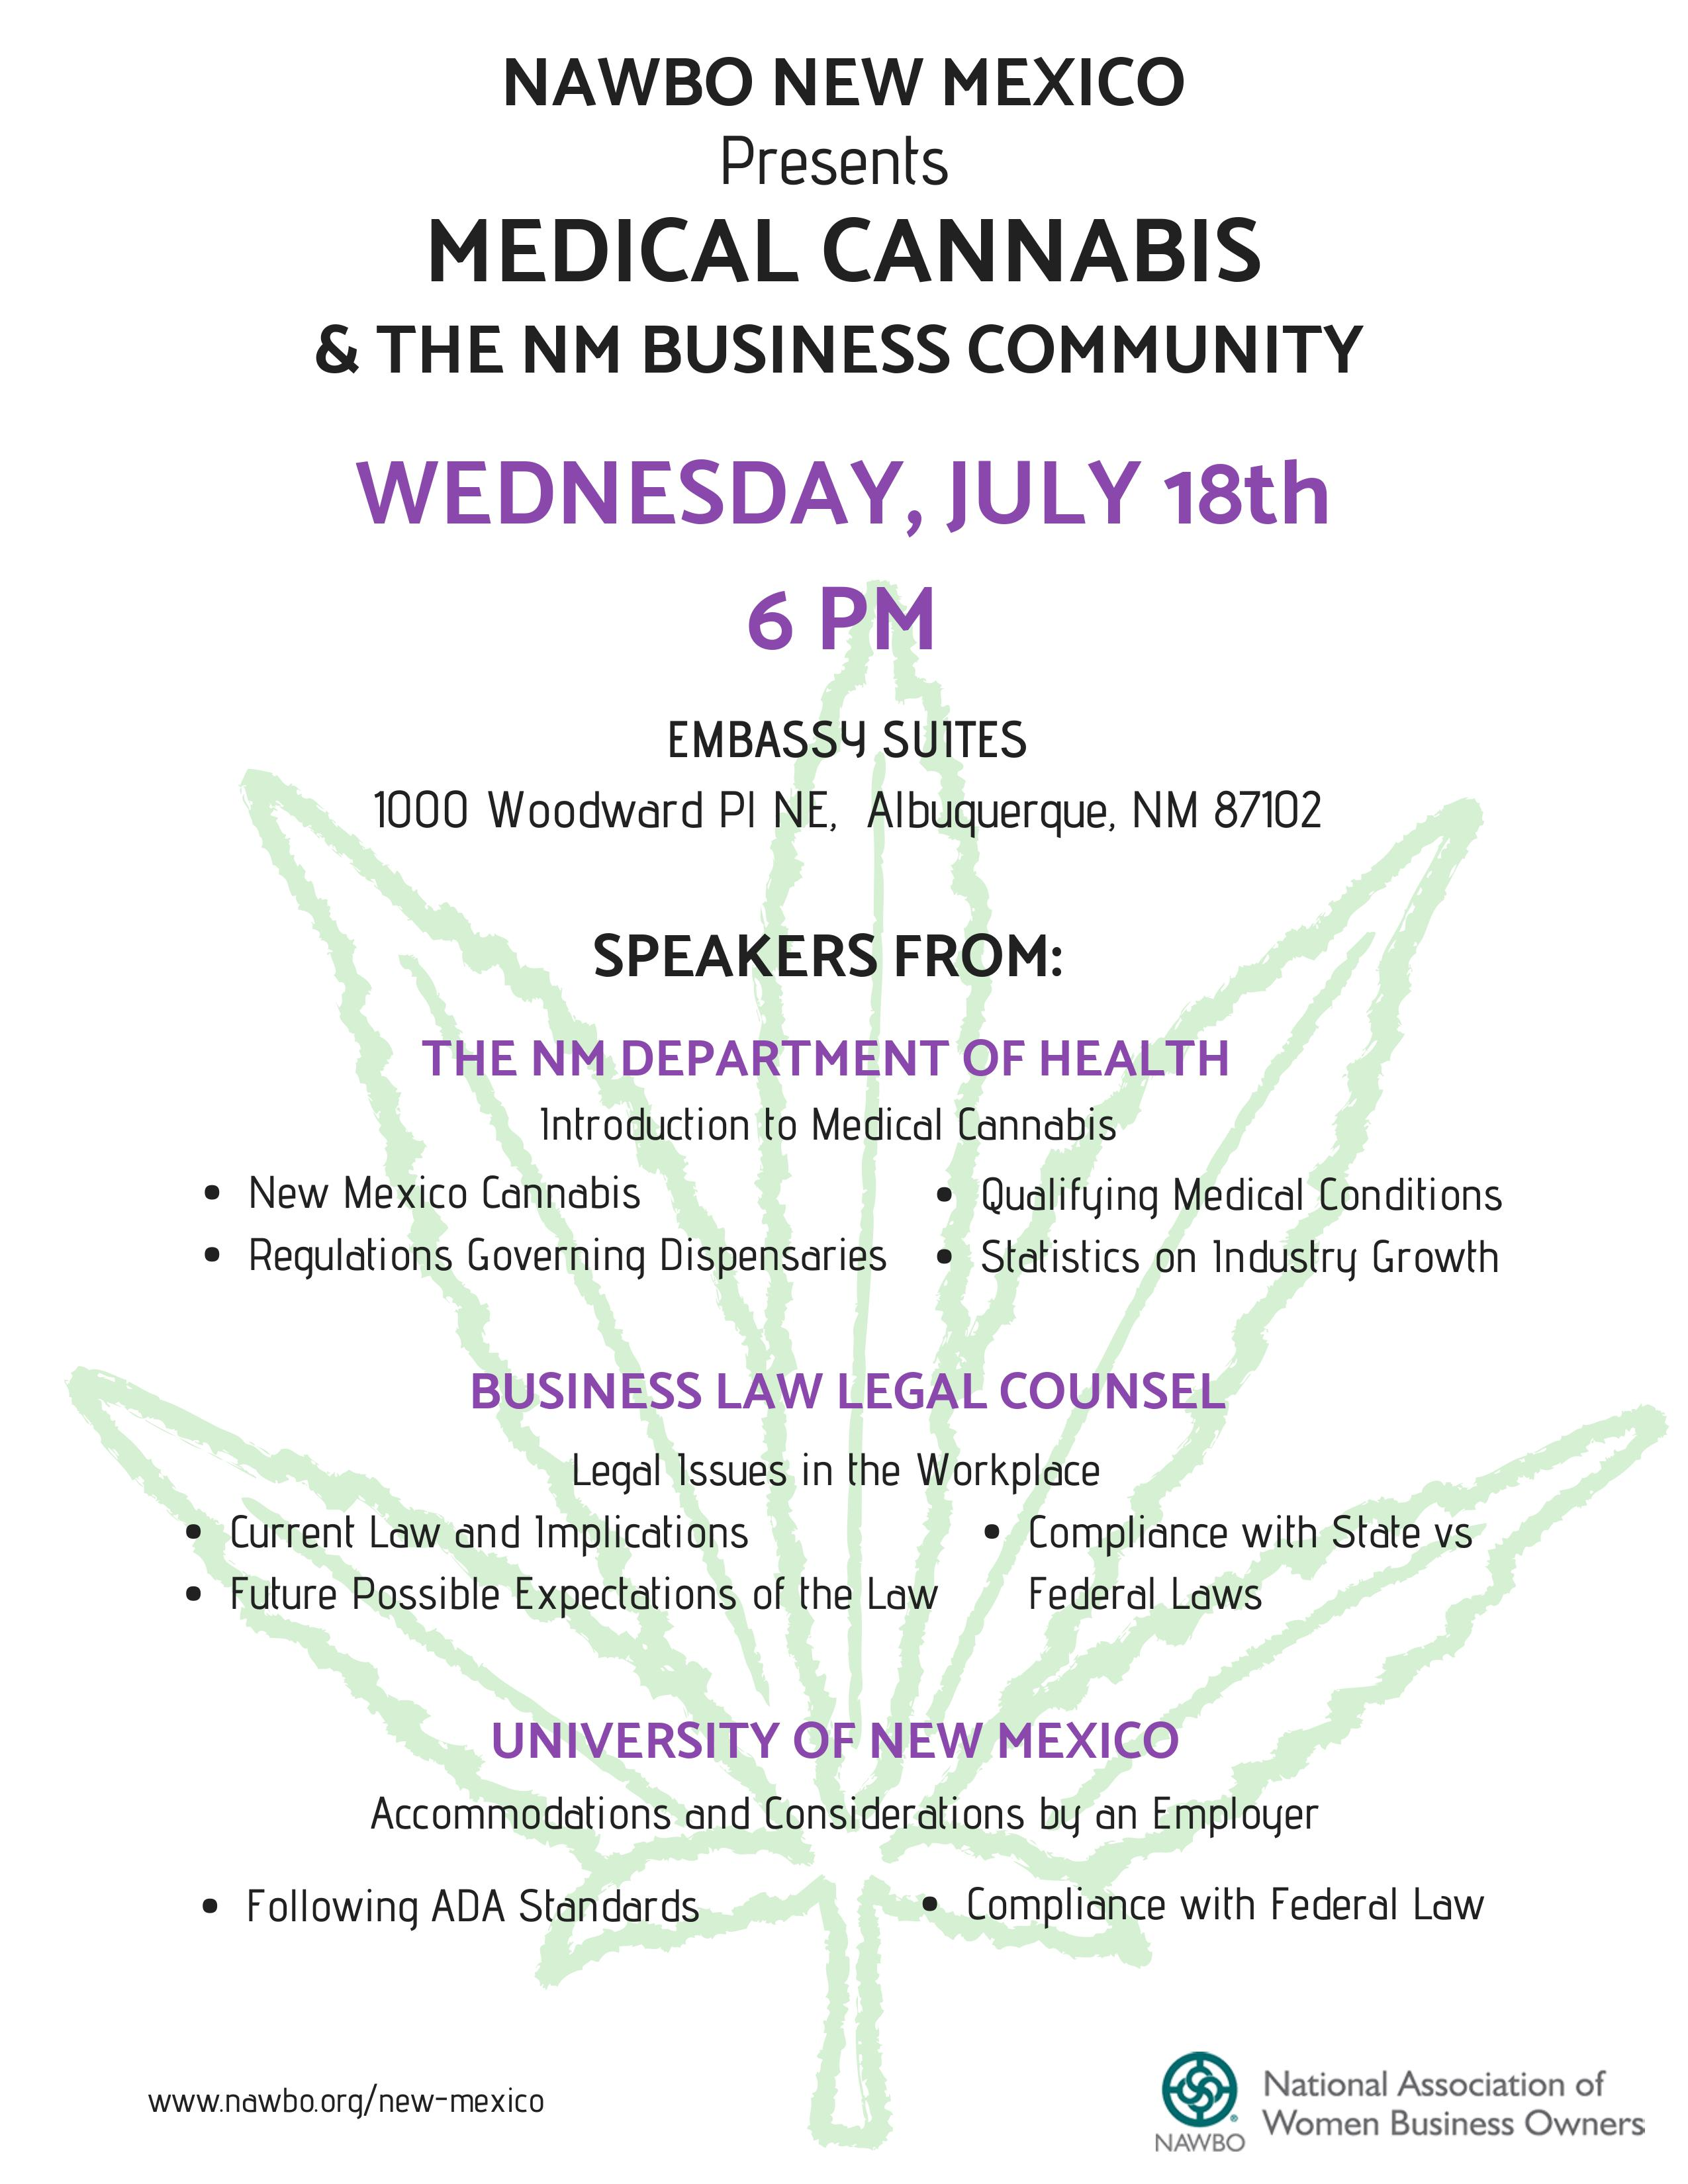 Medical Cannabis and the N M  Business Community at Embassy